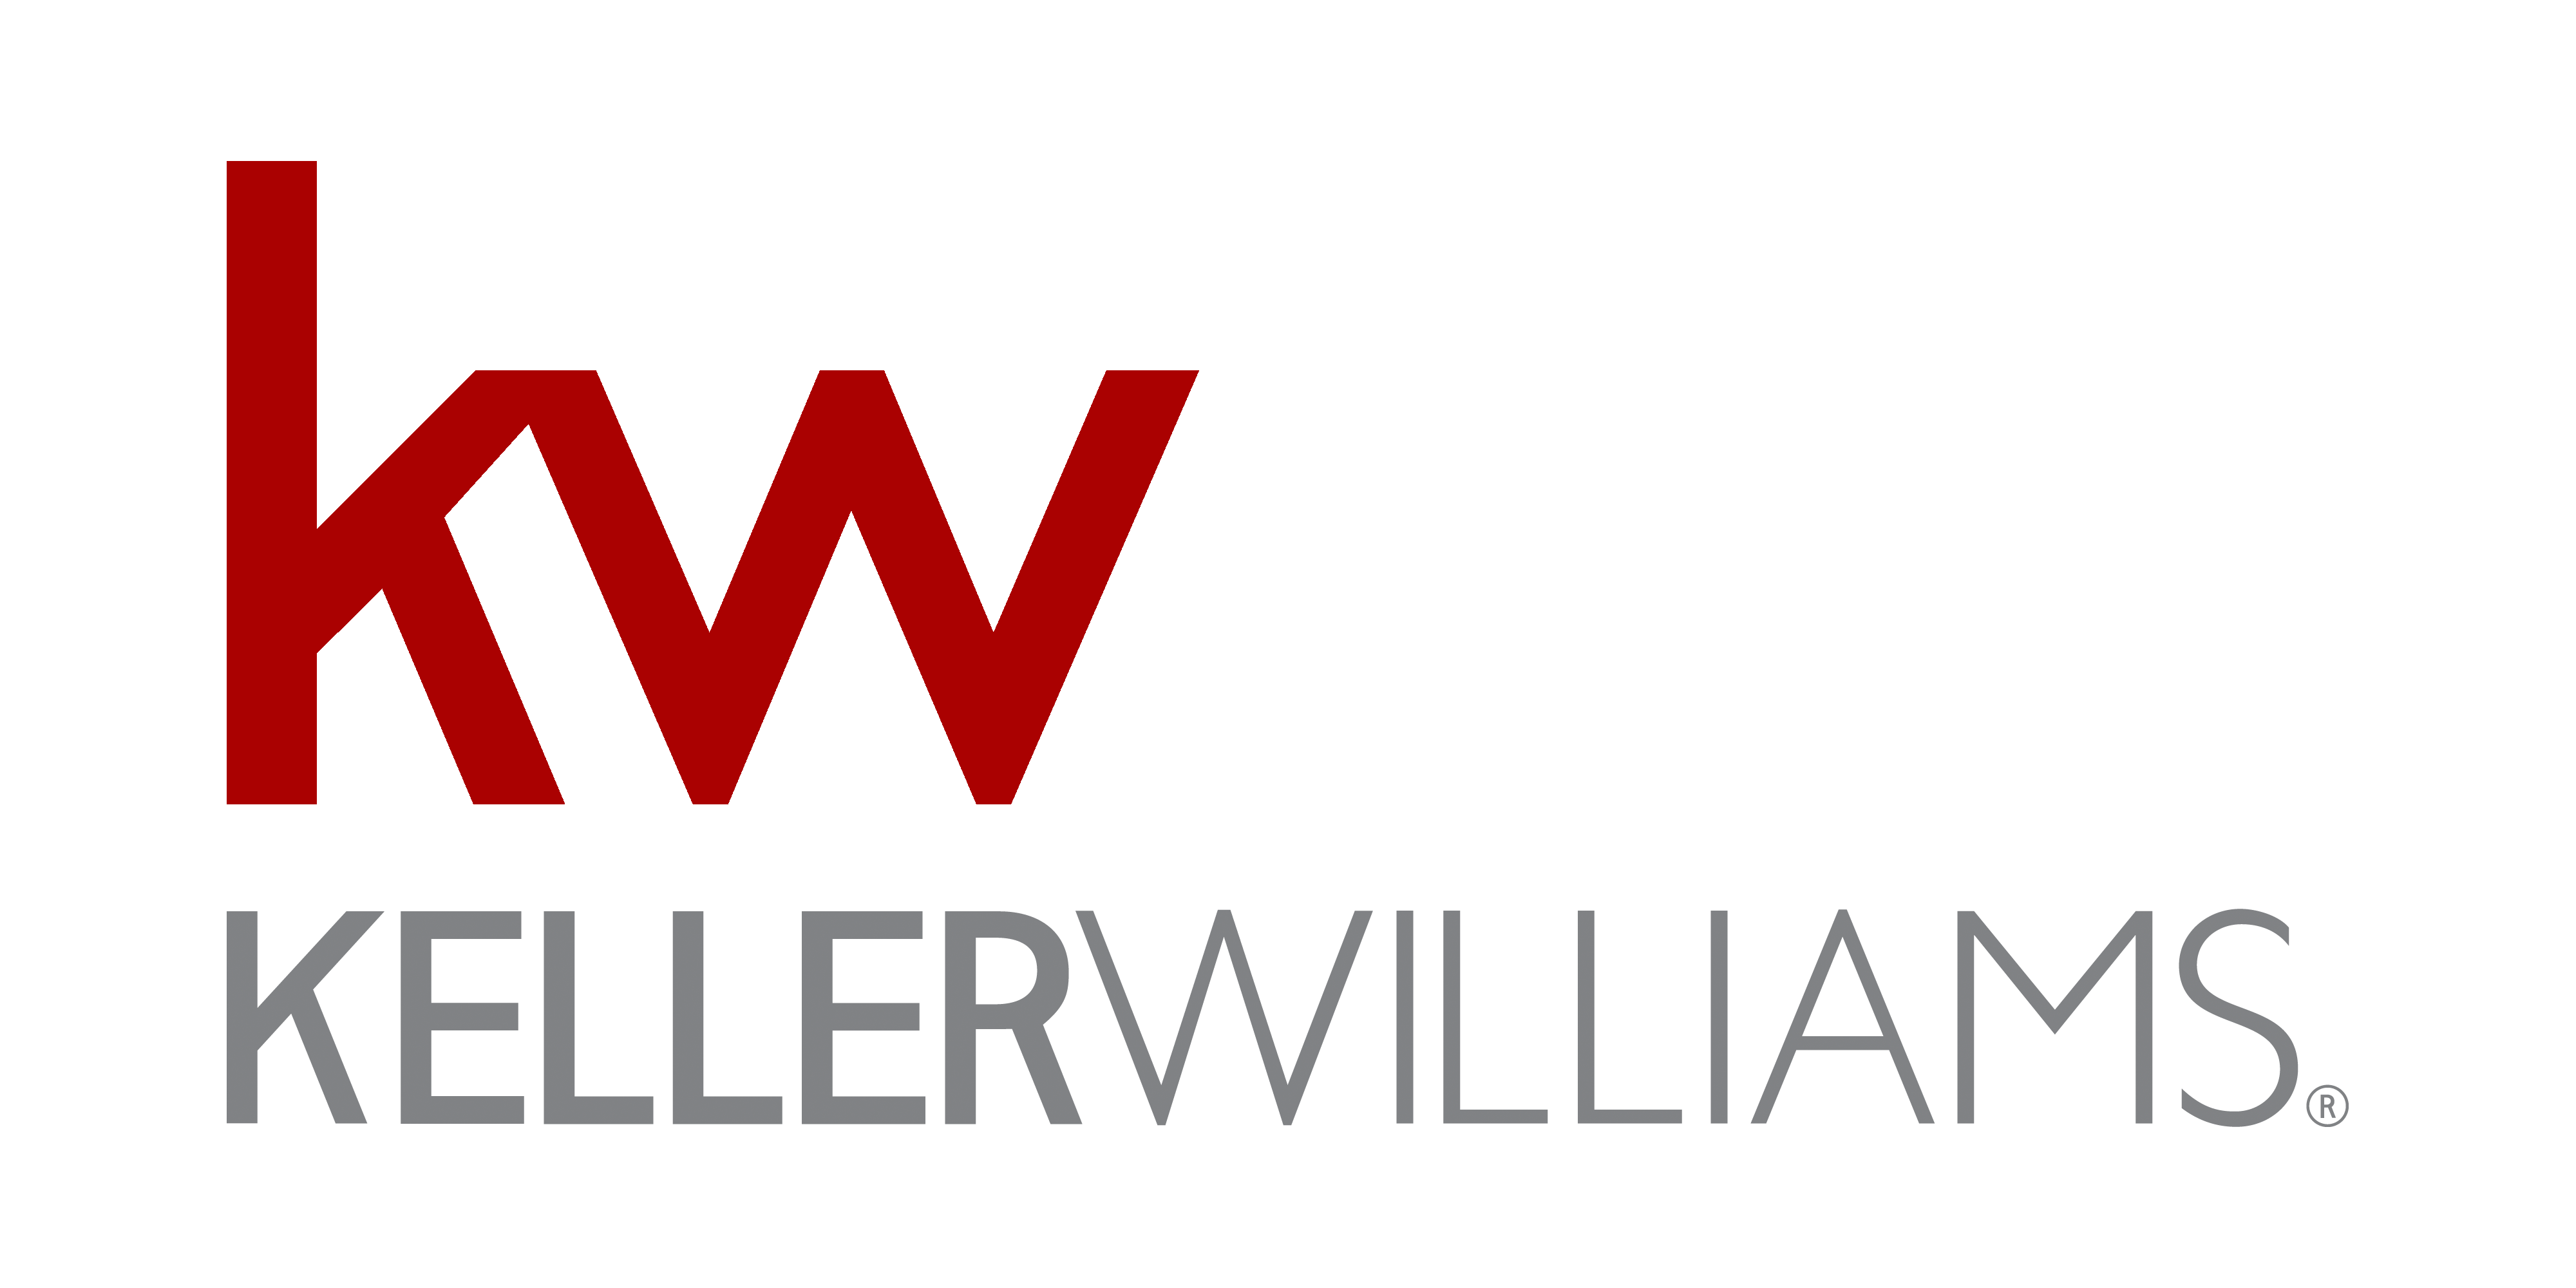 Keller Williams Premier Brokers